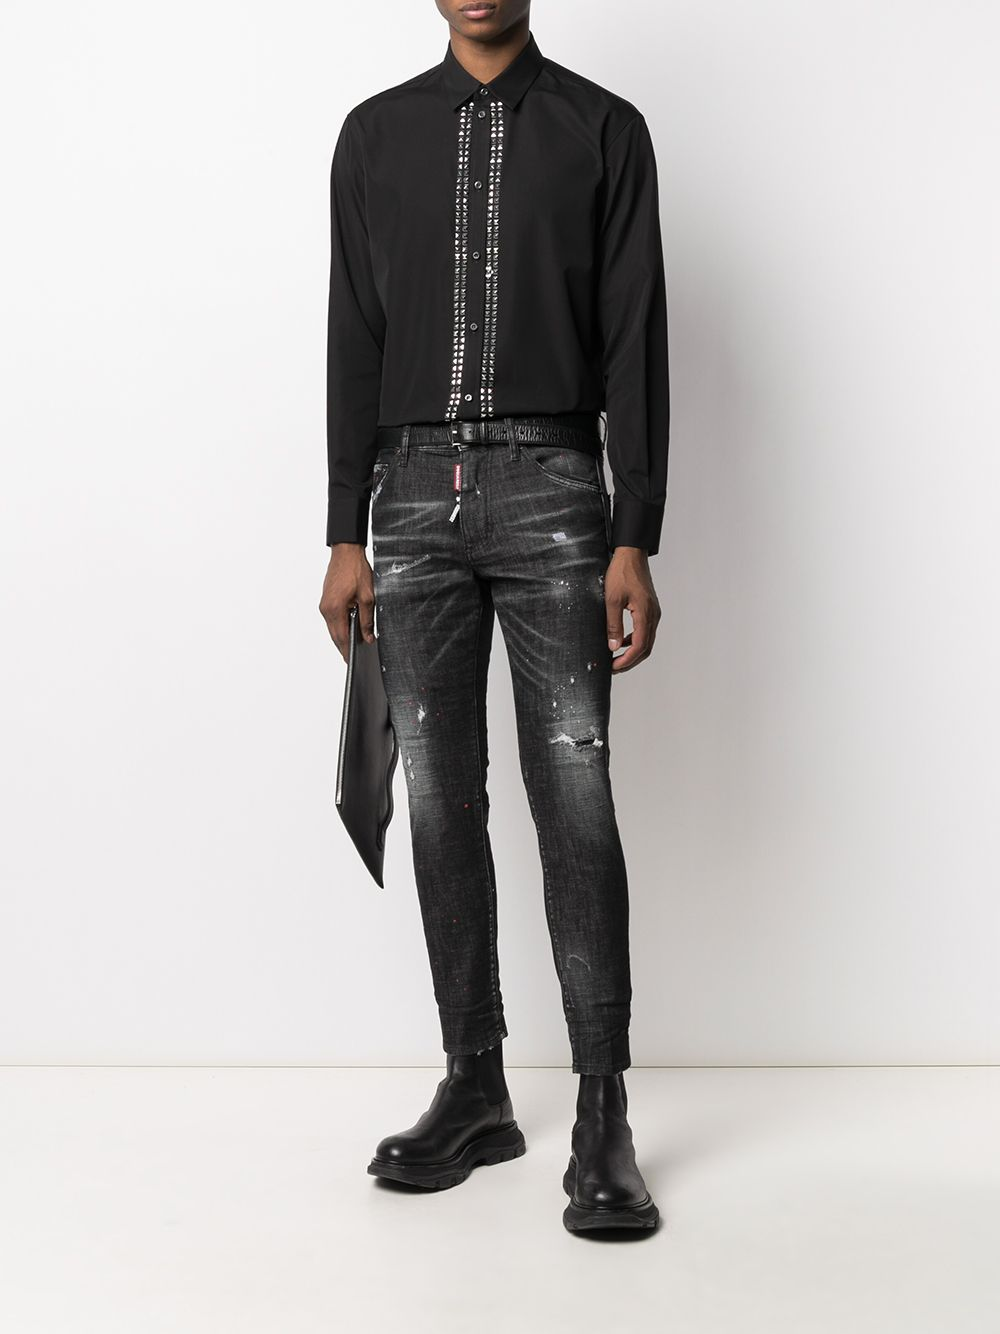 DSQUARED2 Pyramid Stud Embellished Shirt Black